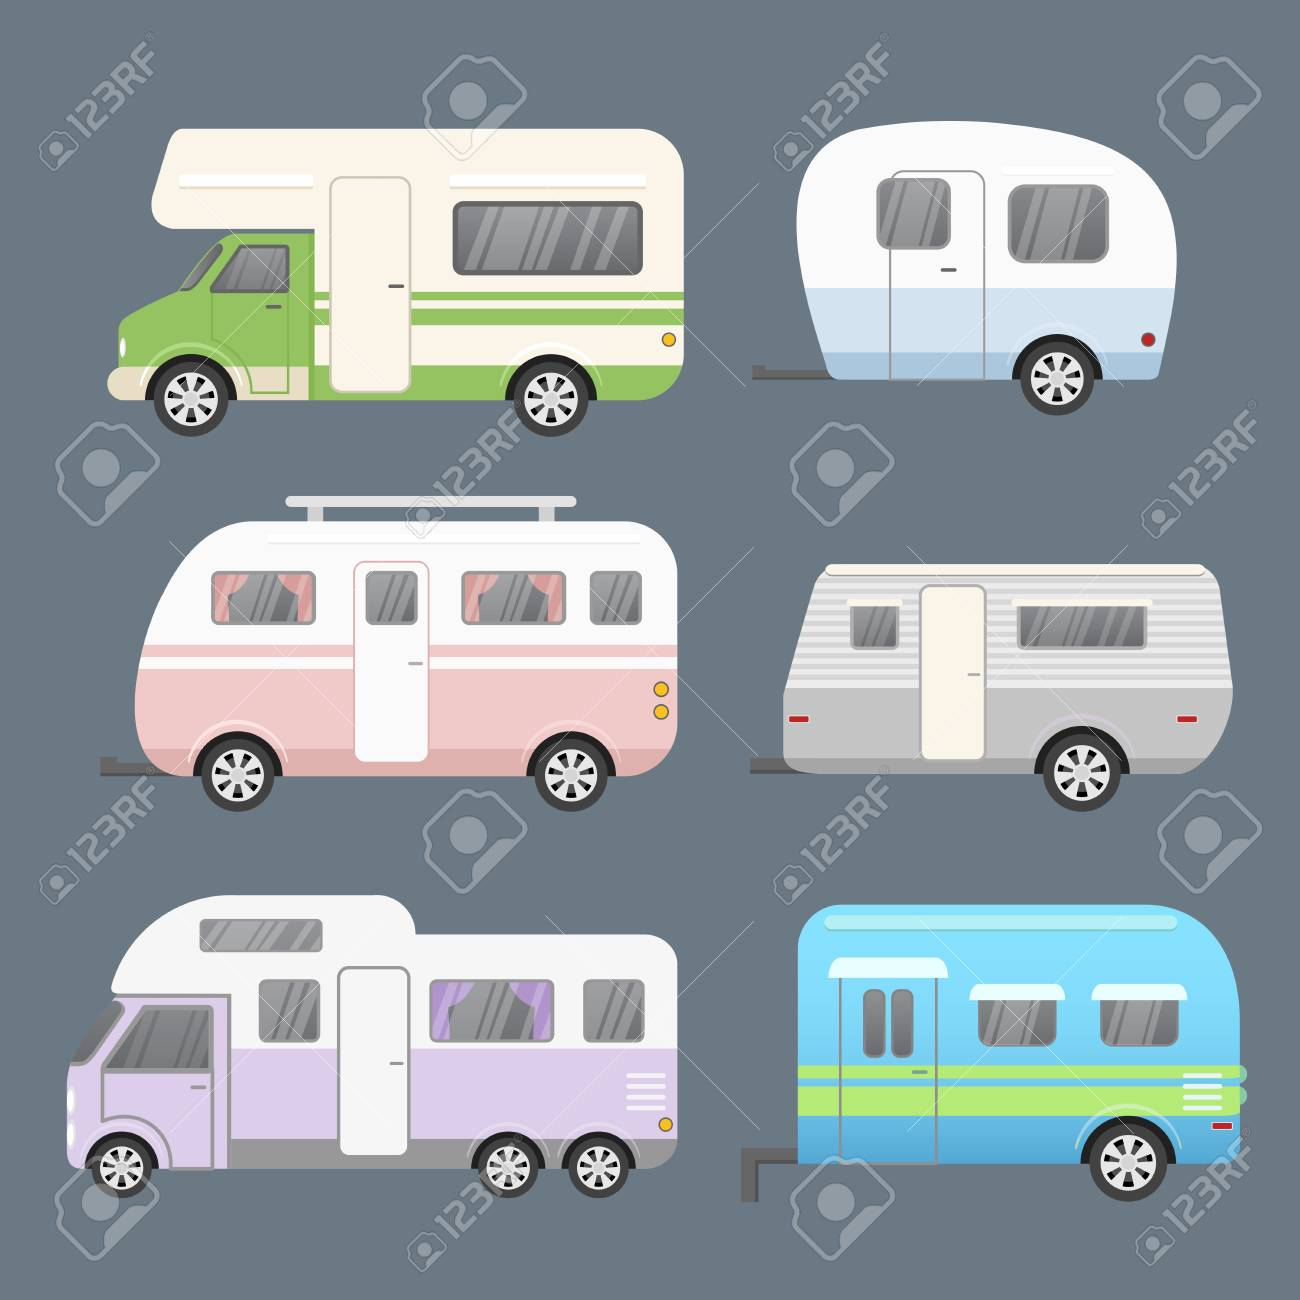 Vector Illustration Set Of Different Types Camping Trailers